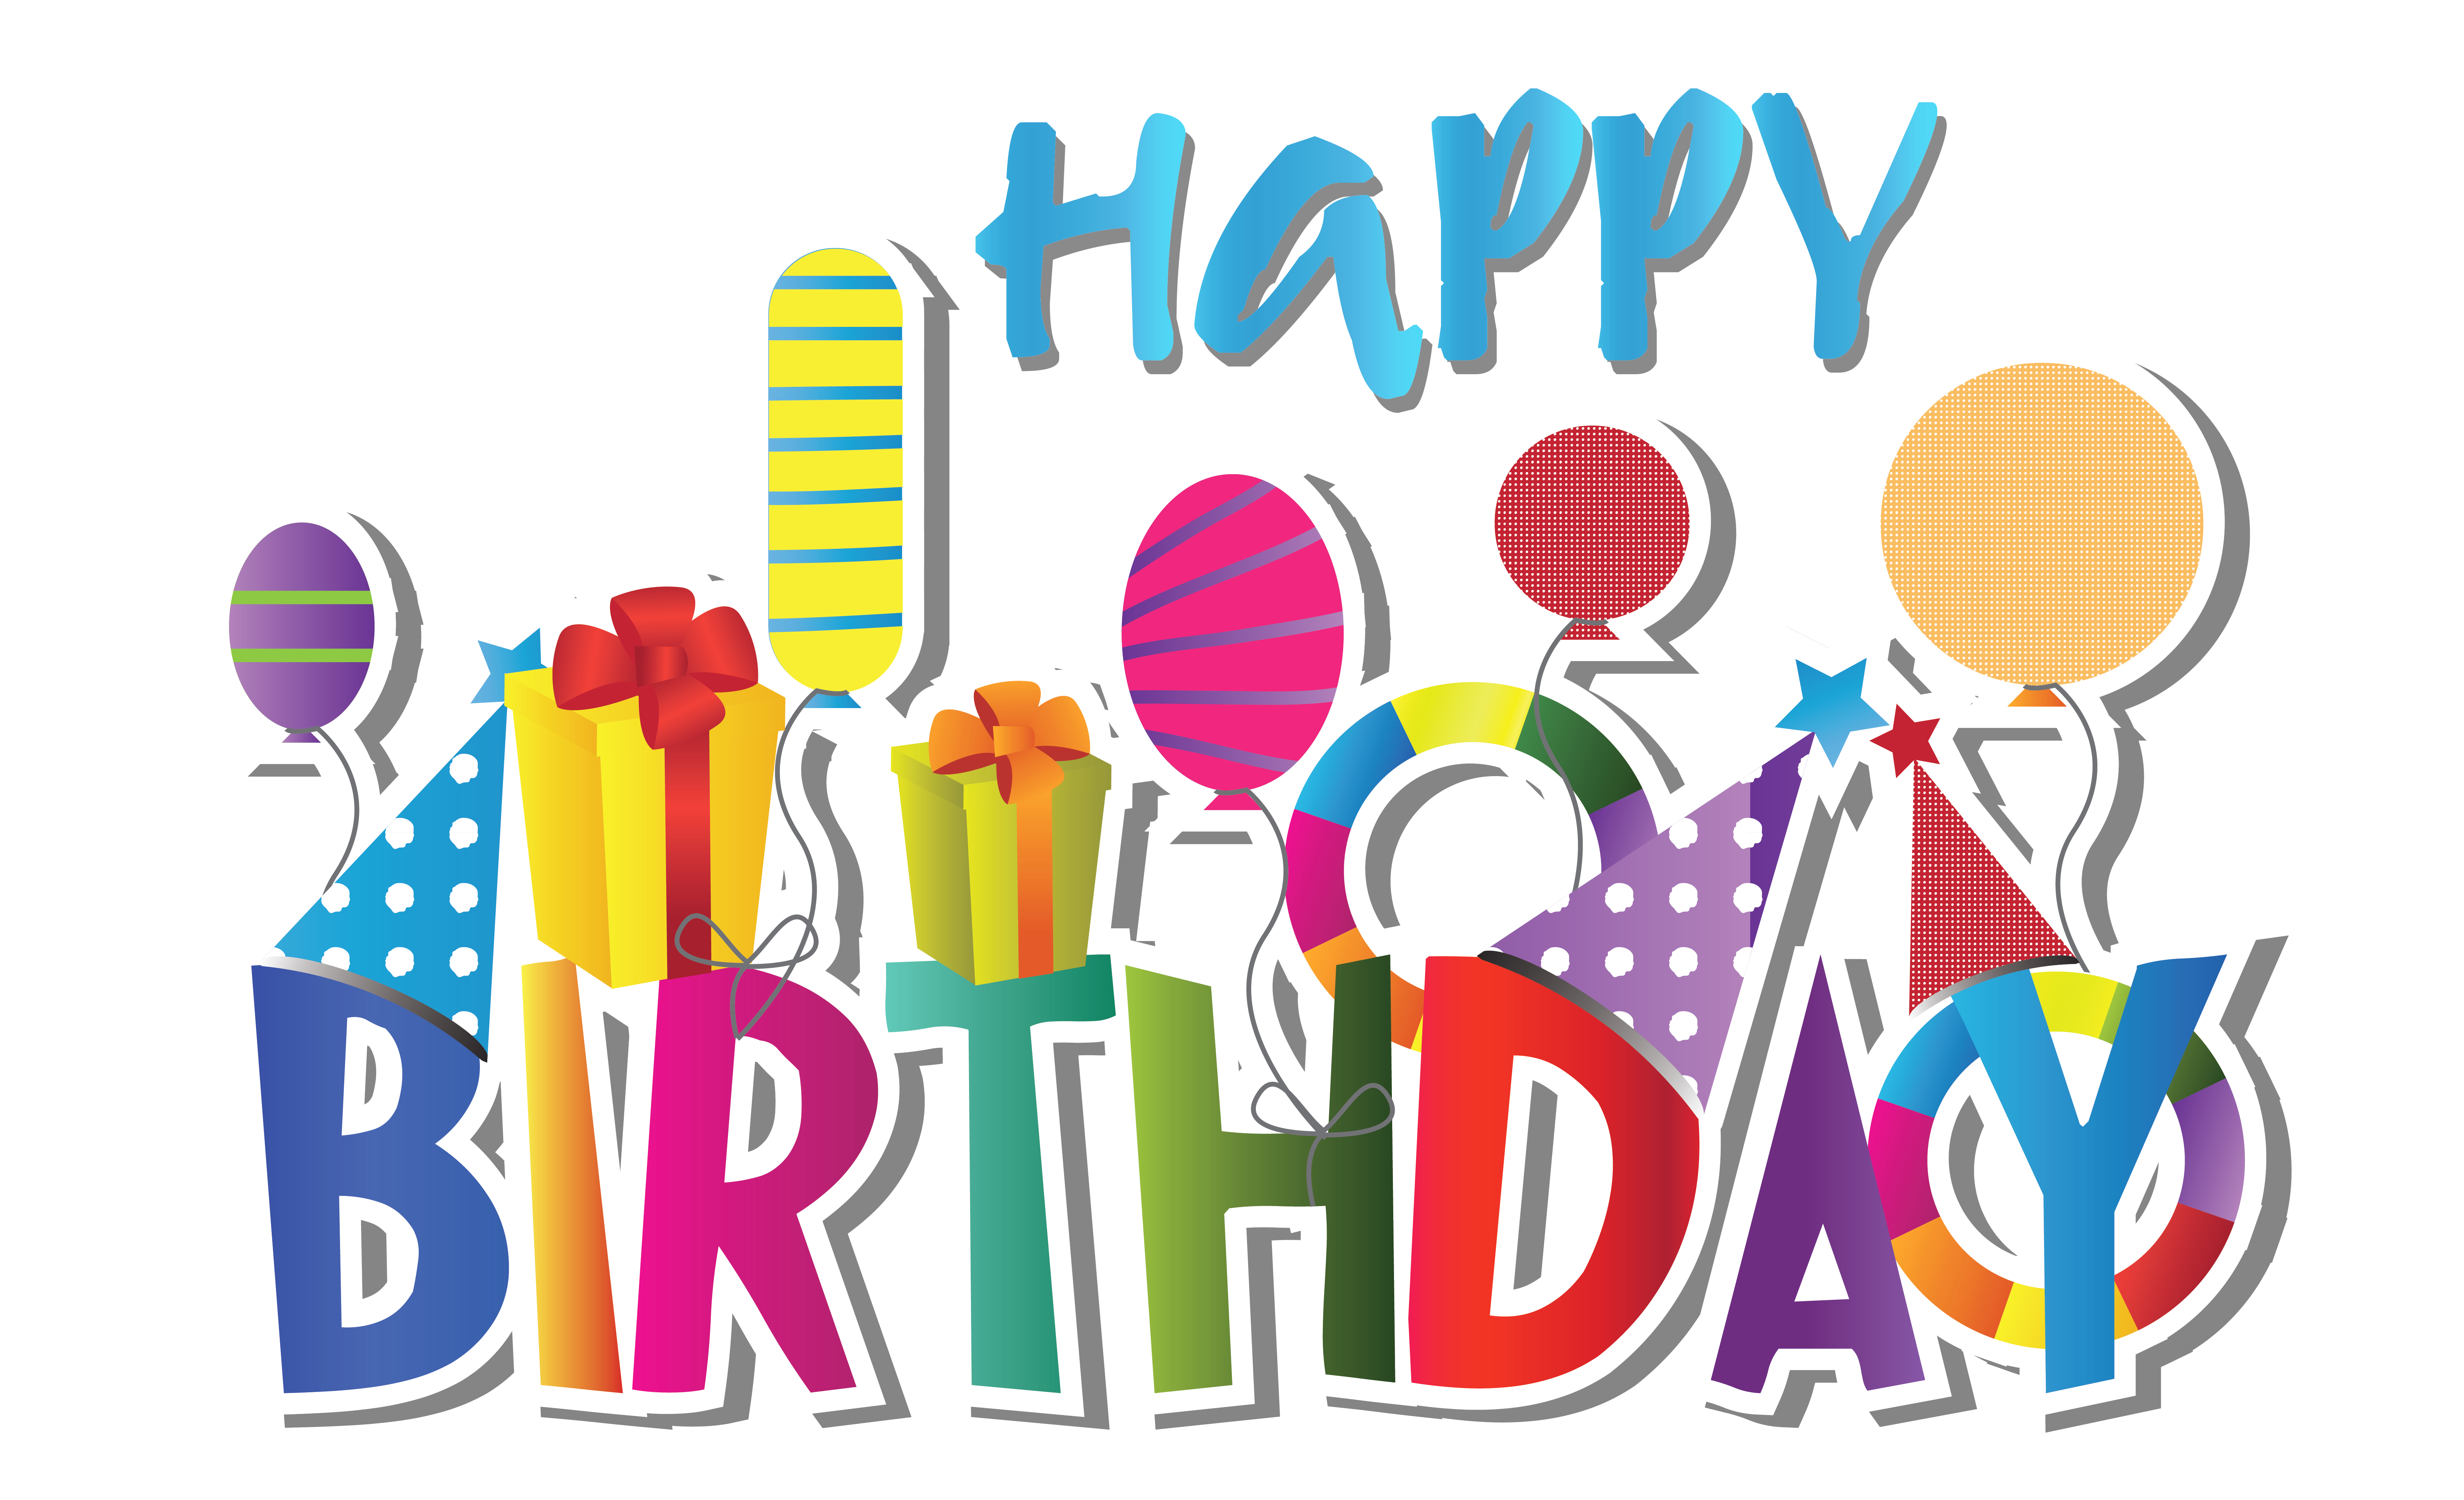 Clipart birthday svg black and white download Cute Happy Birthday Clipart | Gallery Yopriceville - High-Quality ... svg black and white download